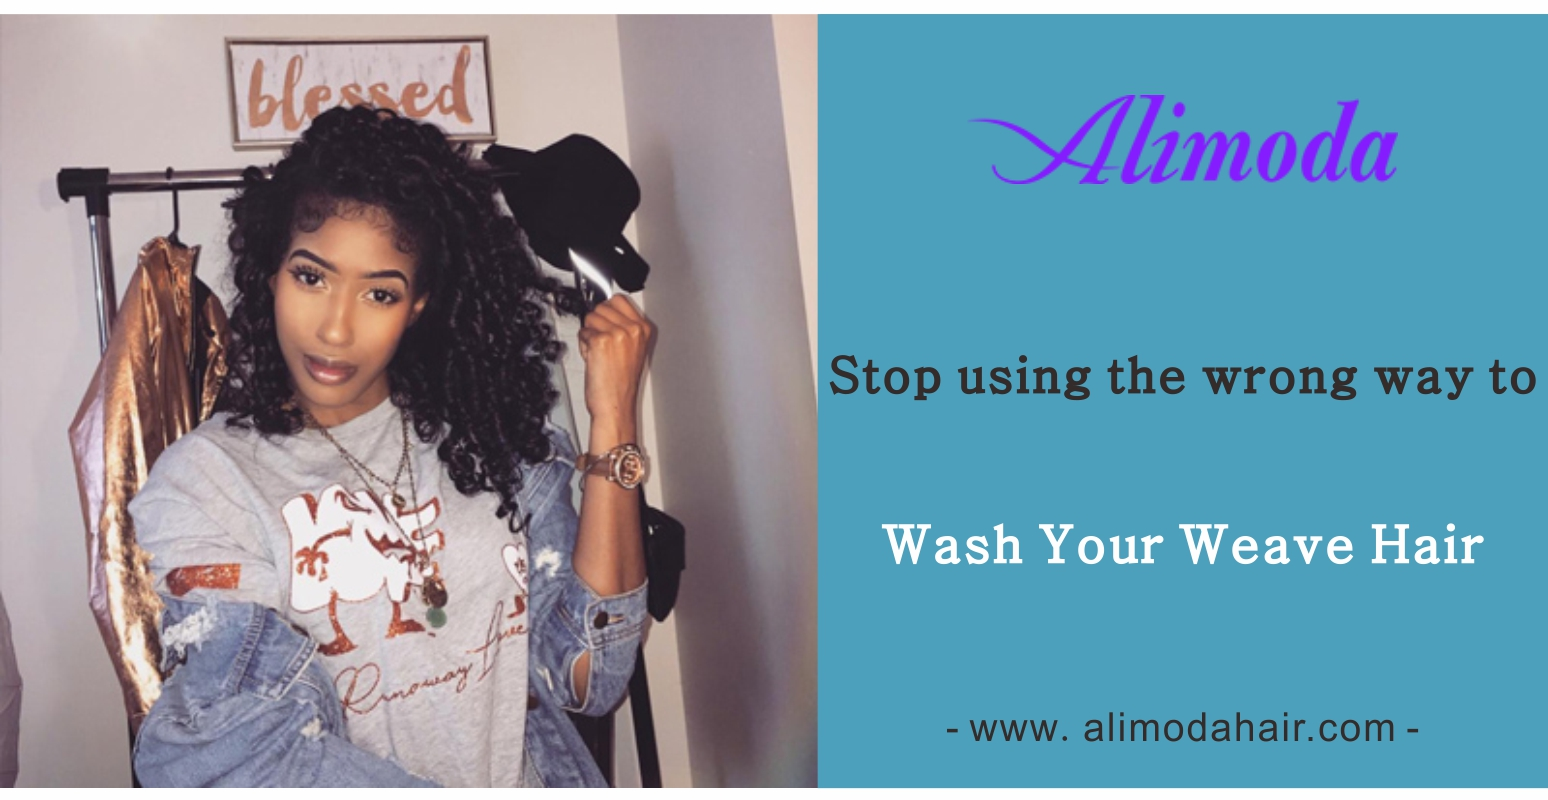 Stop using the wrong way to wash your weave hair